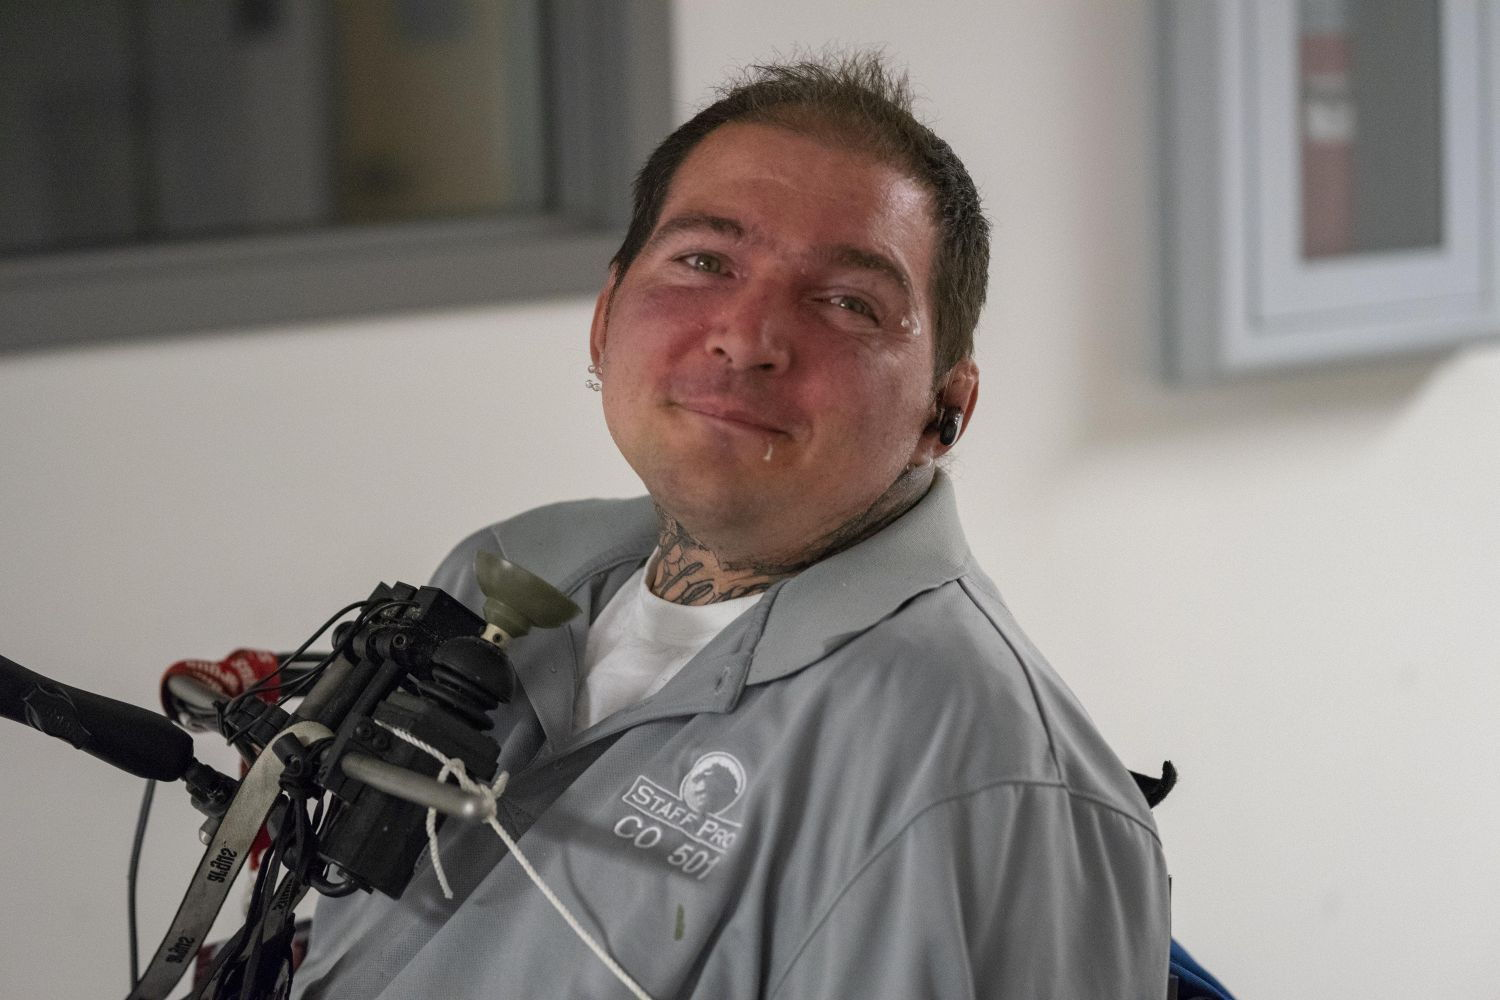 a gentleman poses with his chin control wheel chair  joystick